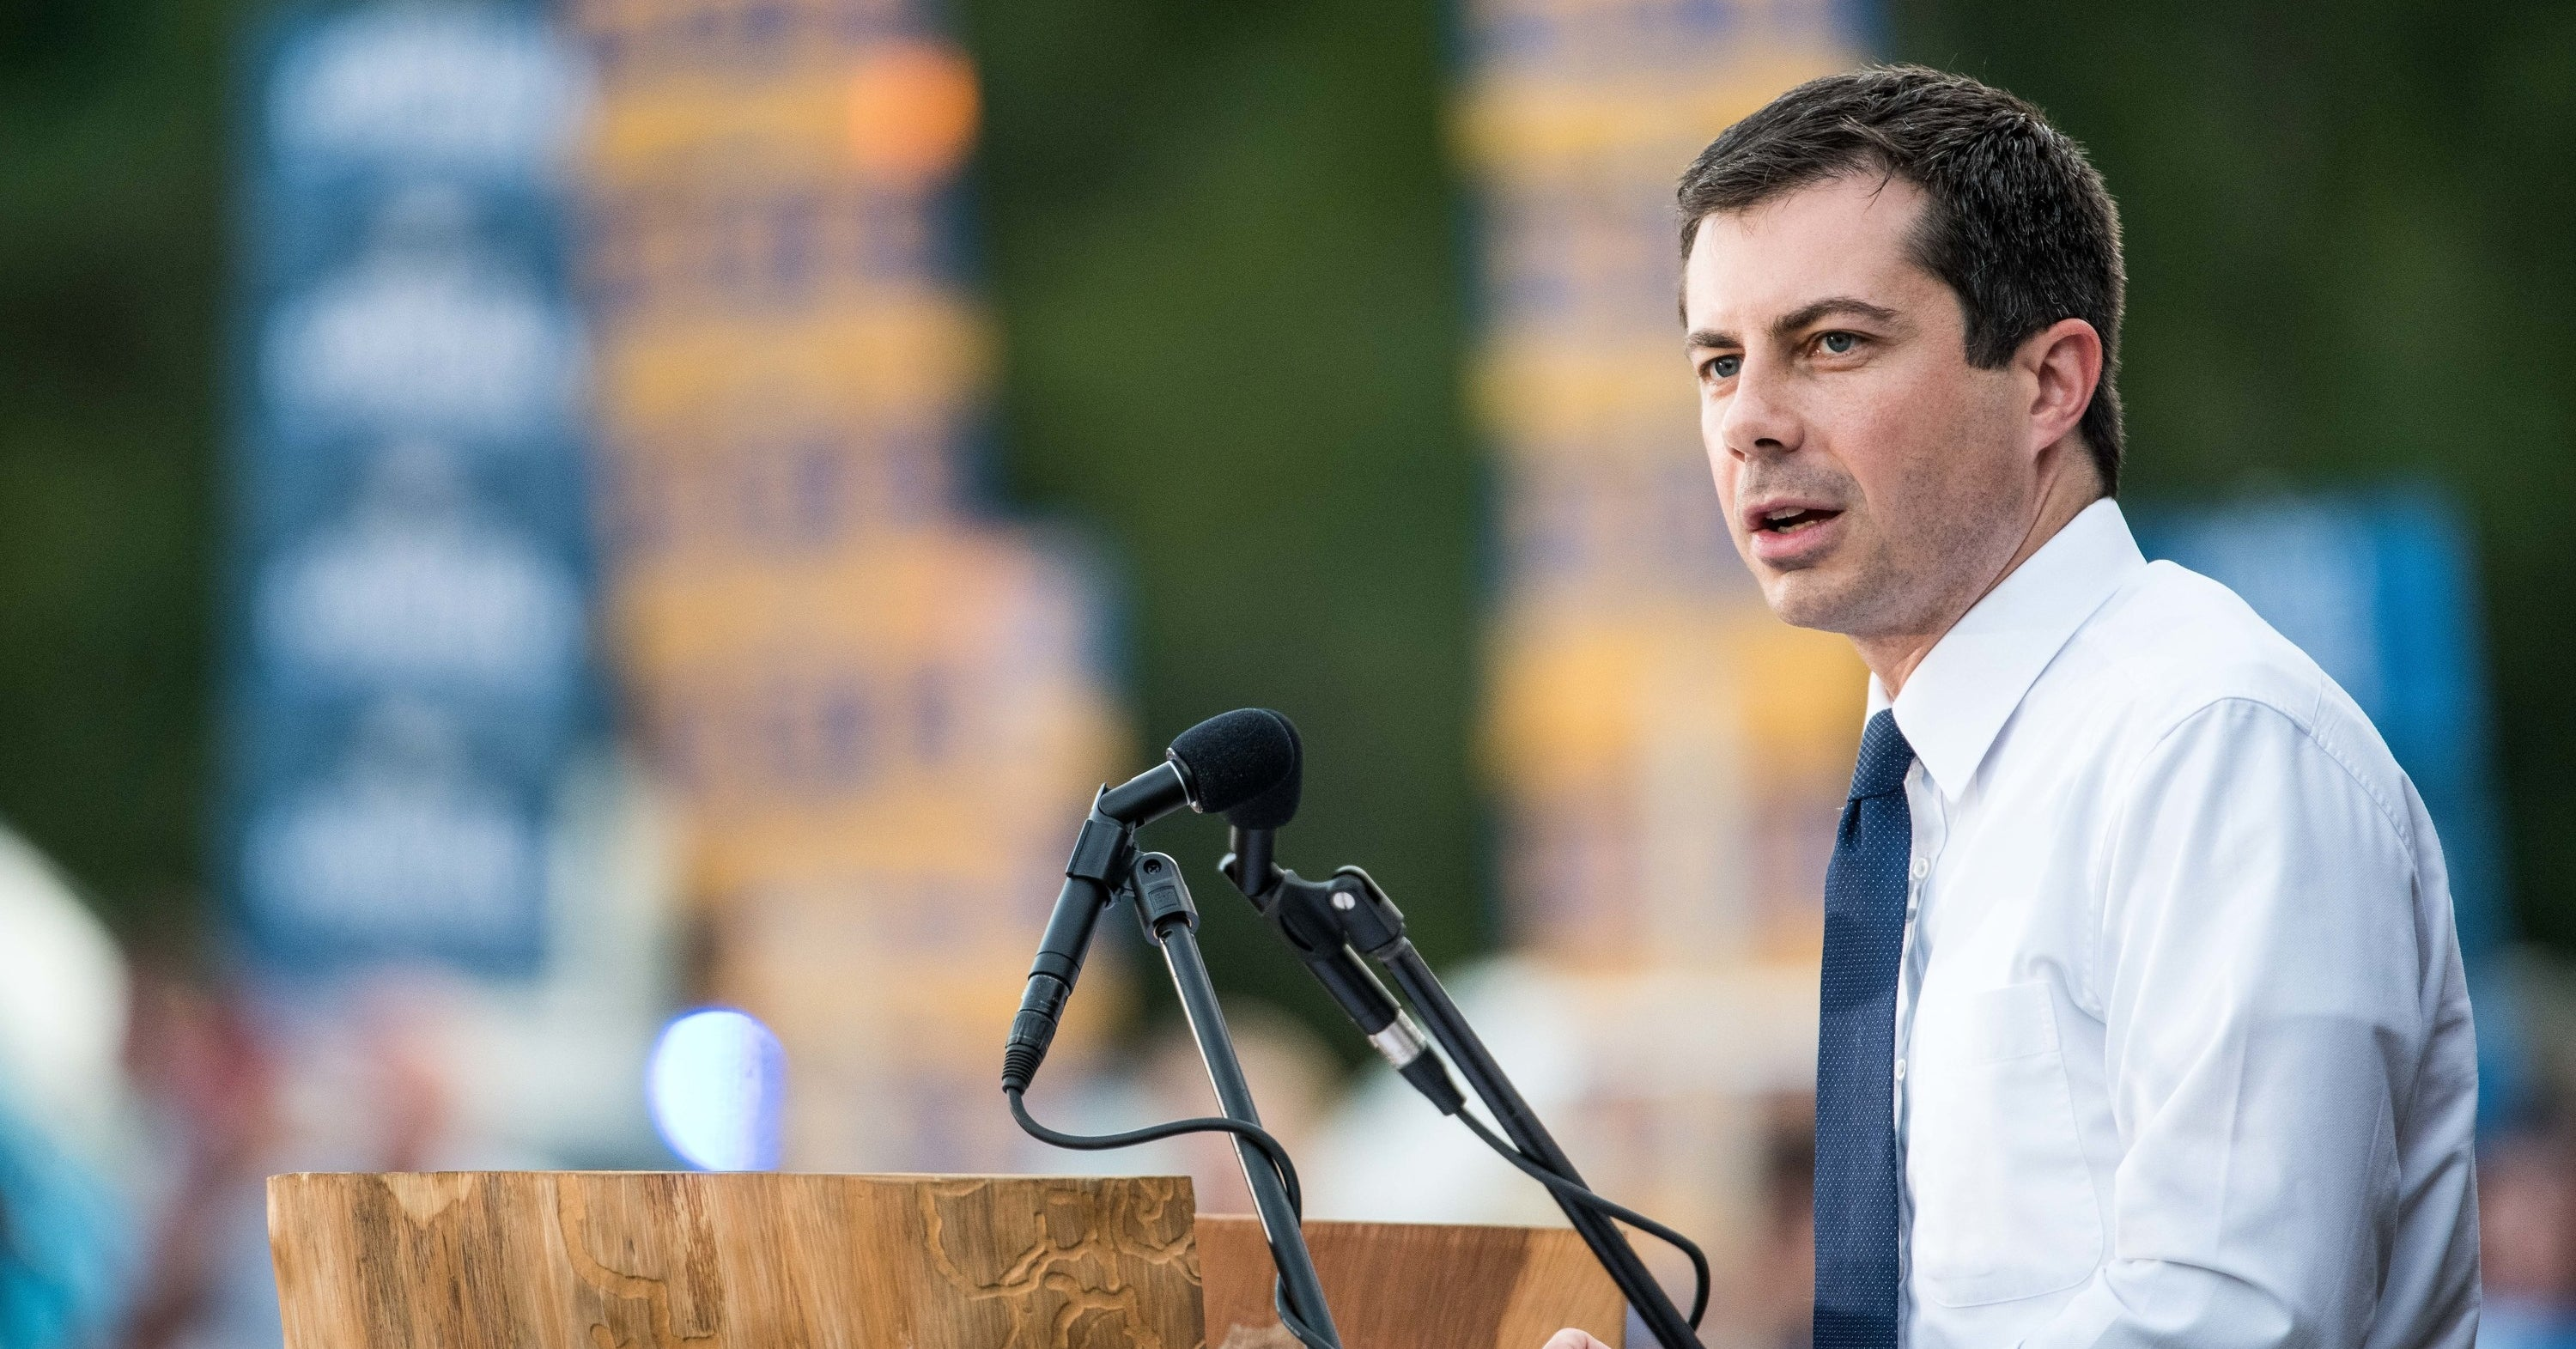 """Some LGBTQ Advocates Want More From Pete Buttigieg: """"I'm Not Going To Vote For Him Just Because He's Gay"""""""